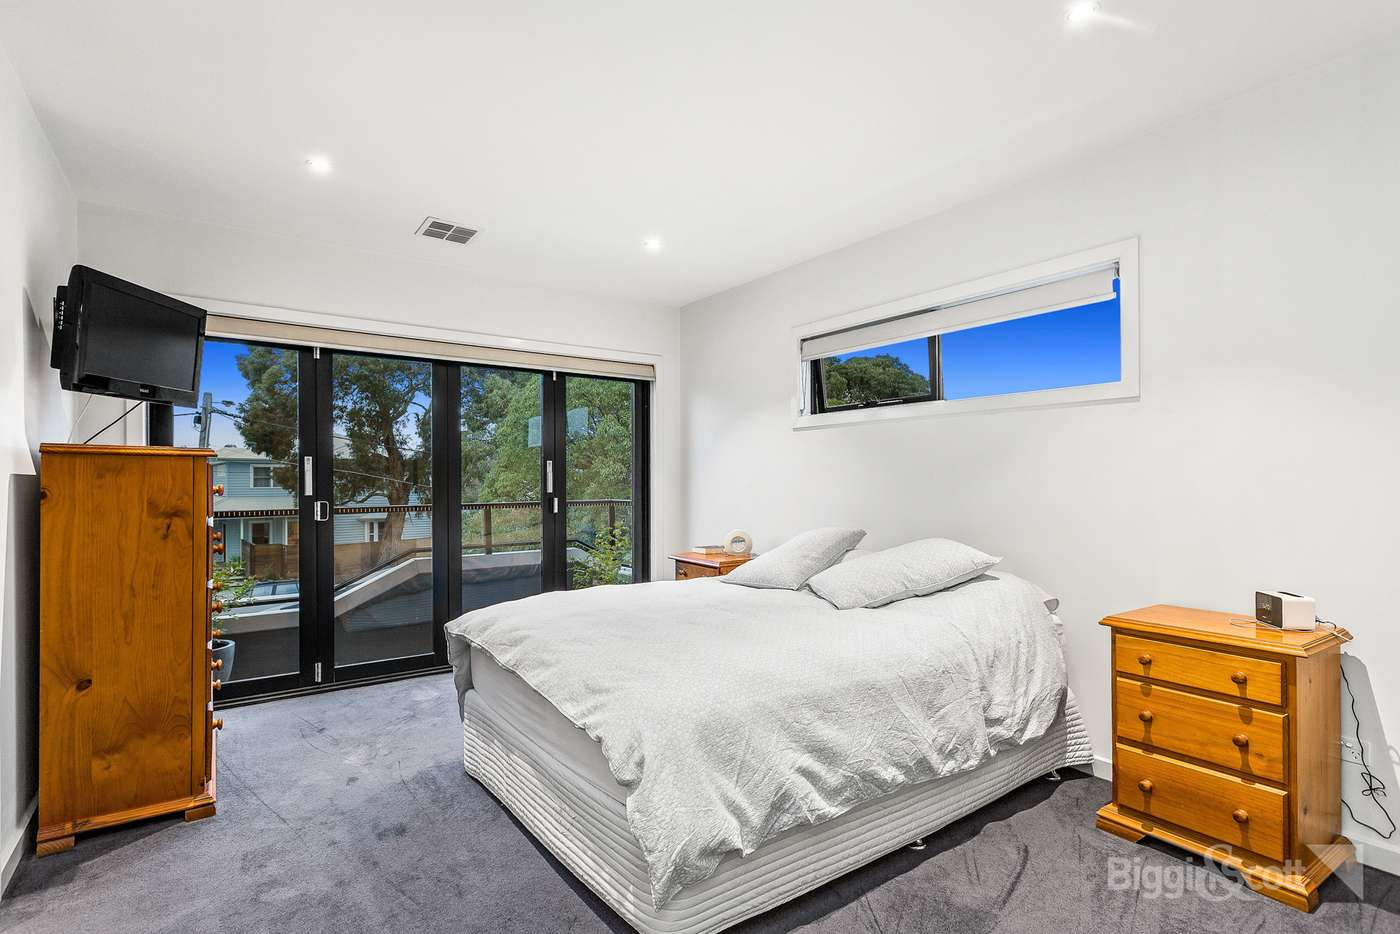 Sixth view of Homely house listing, 2/40 Anzac Crescent, Williamstown VIC 3016